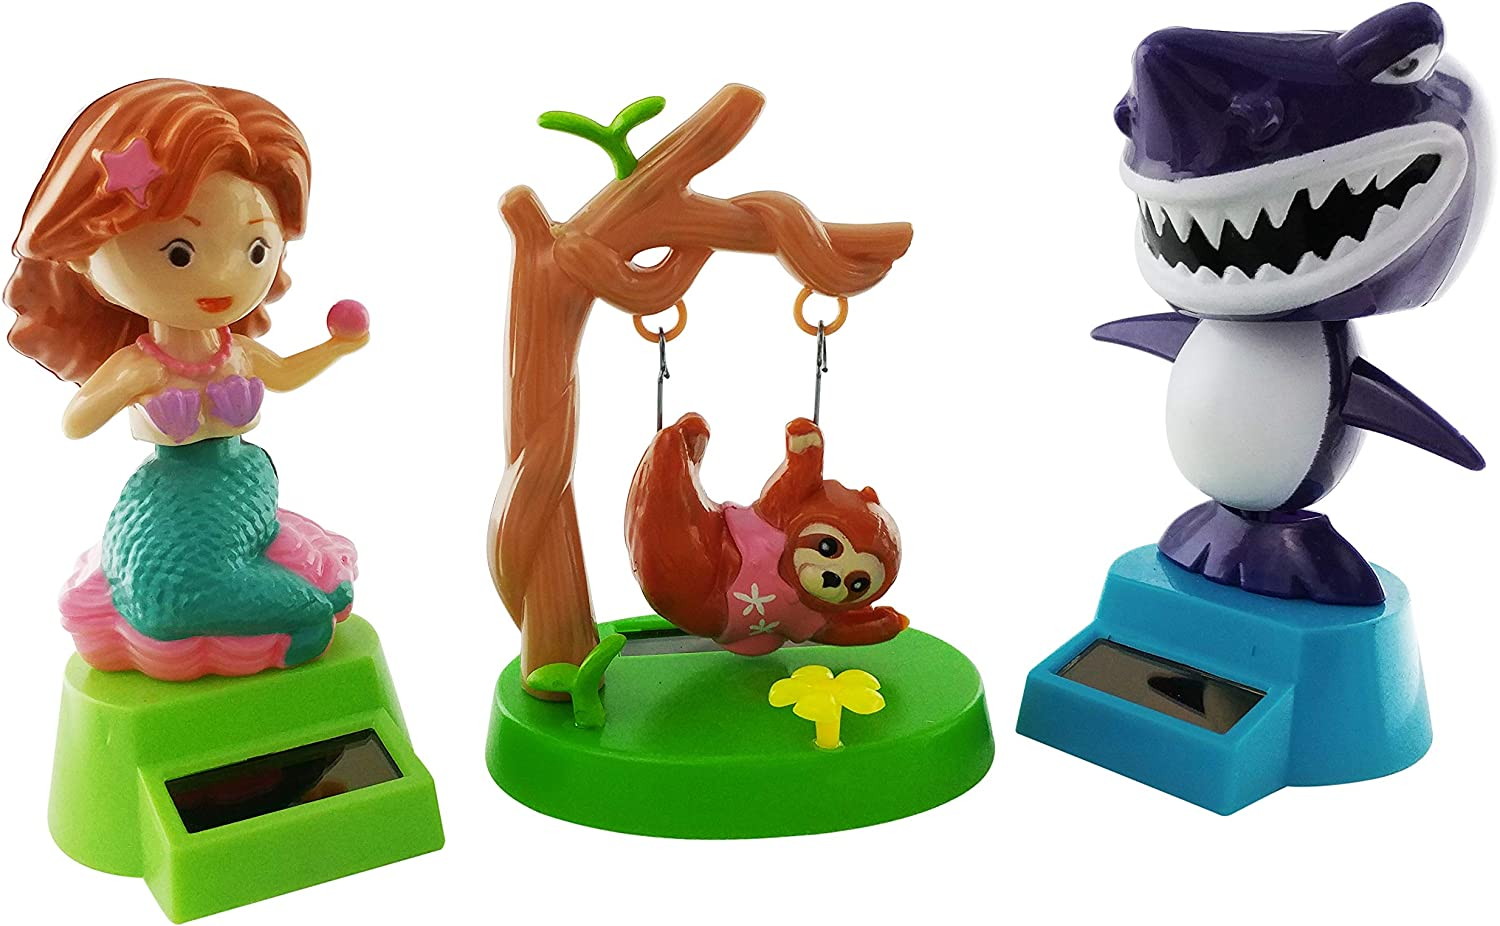 Outdoors By Design Solar Dancing Dashboard Mermaid, Sloth and Shark Toys are Solar Powered Figures | Also Called Solar Powered Bobble Head or Solar Powered Characters